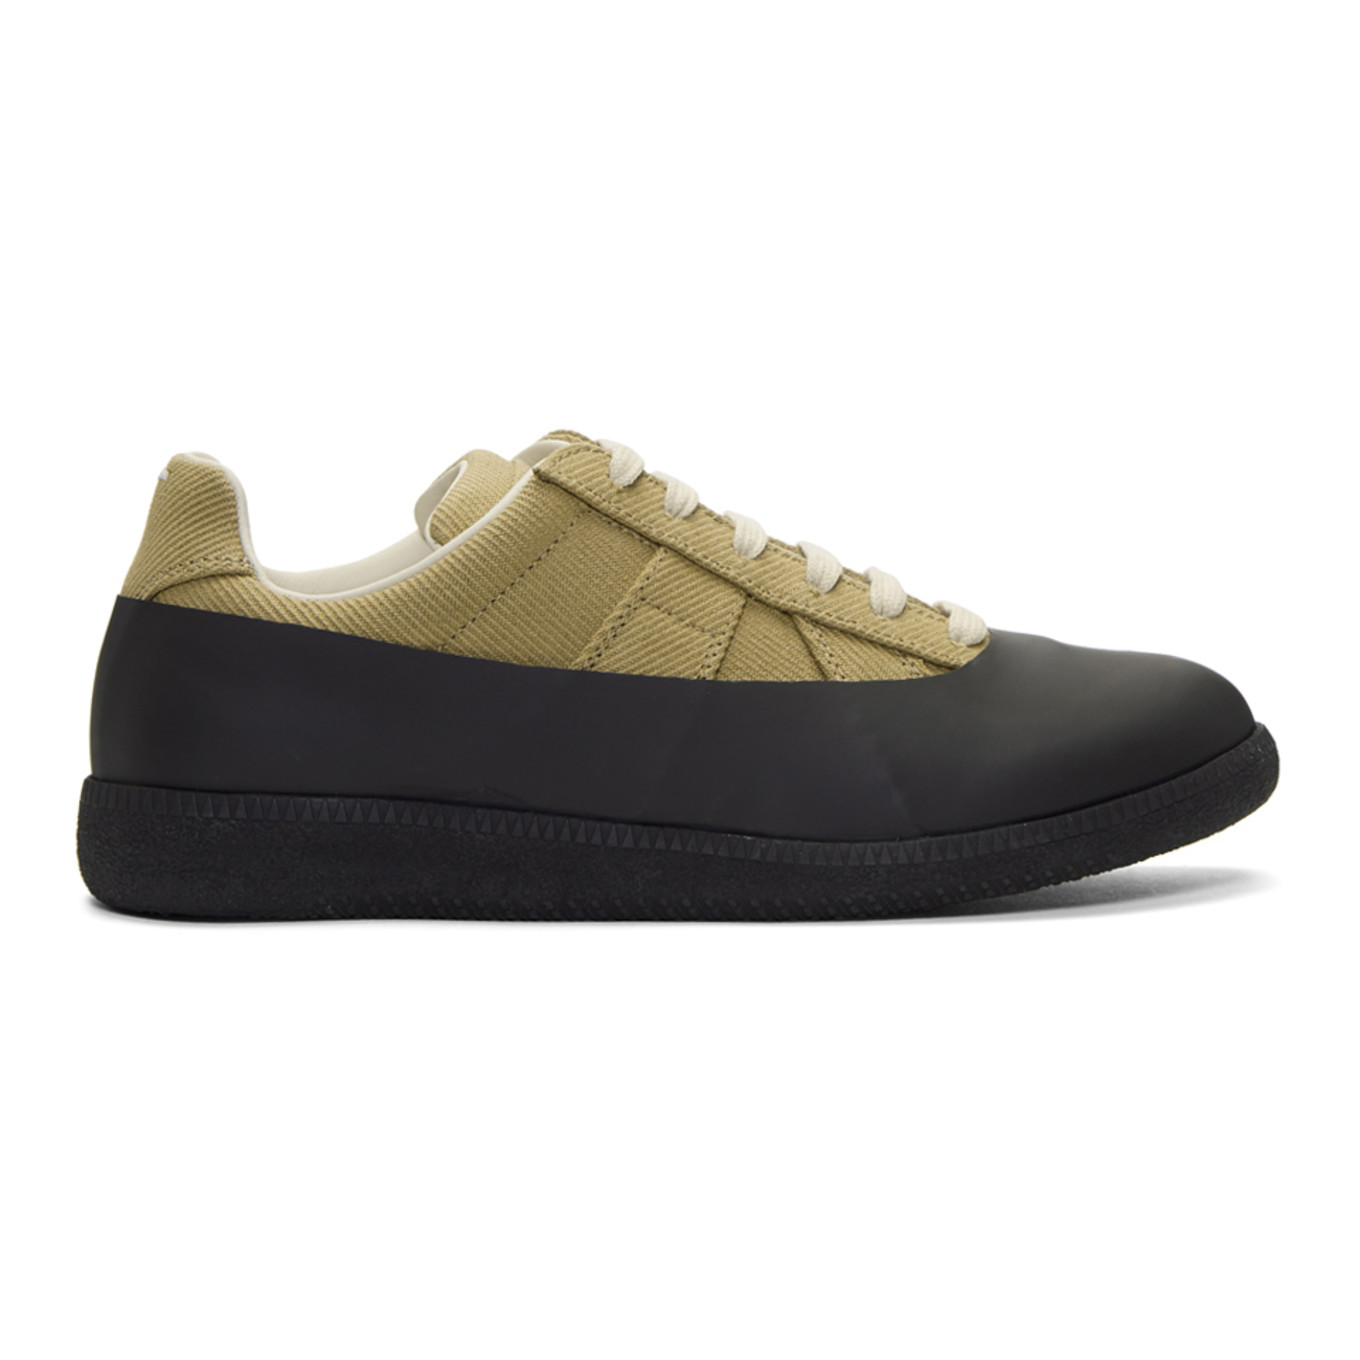 Maison Margiela Galosh Replica Sneakers Clearance Looking For Cheap Footlocker Pictures JDXzg5z